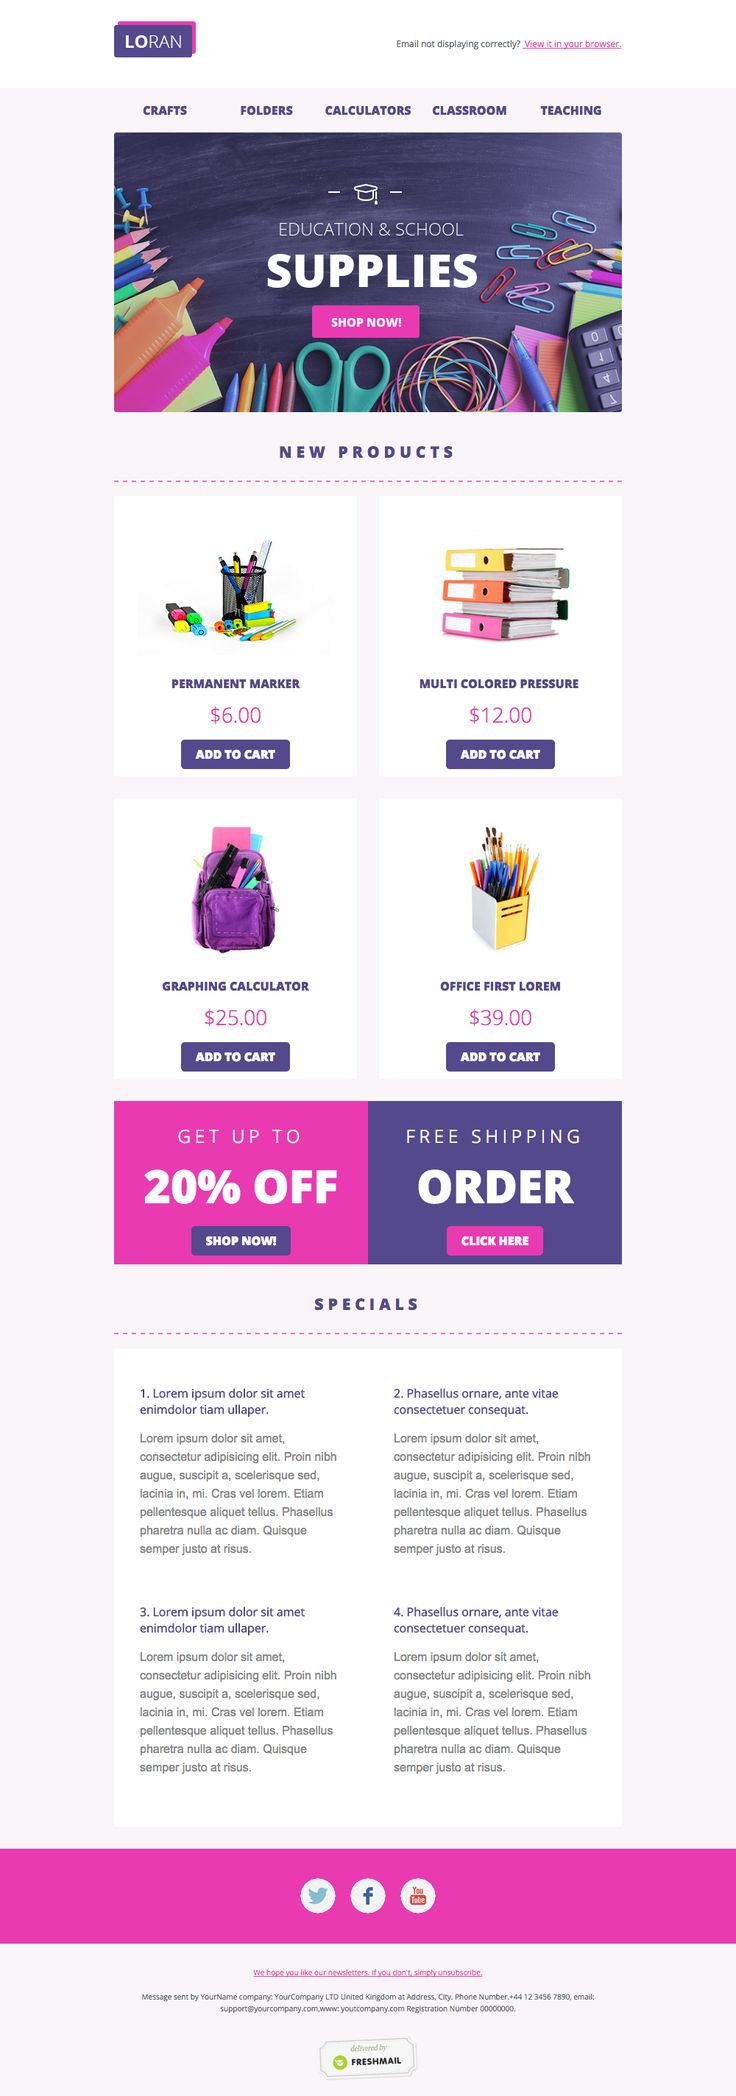 The Best Newsletter Images On Pinterest Email Templates - Simple newsletter templates